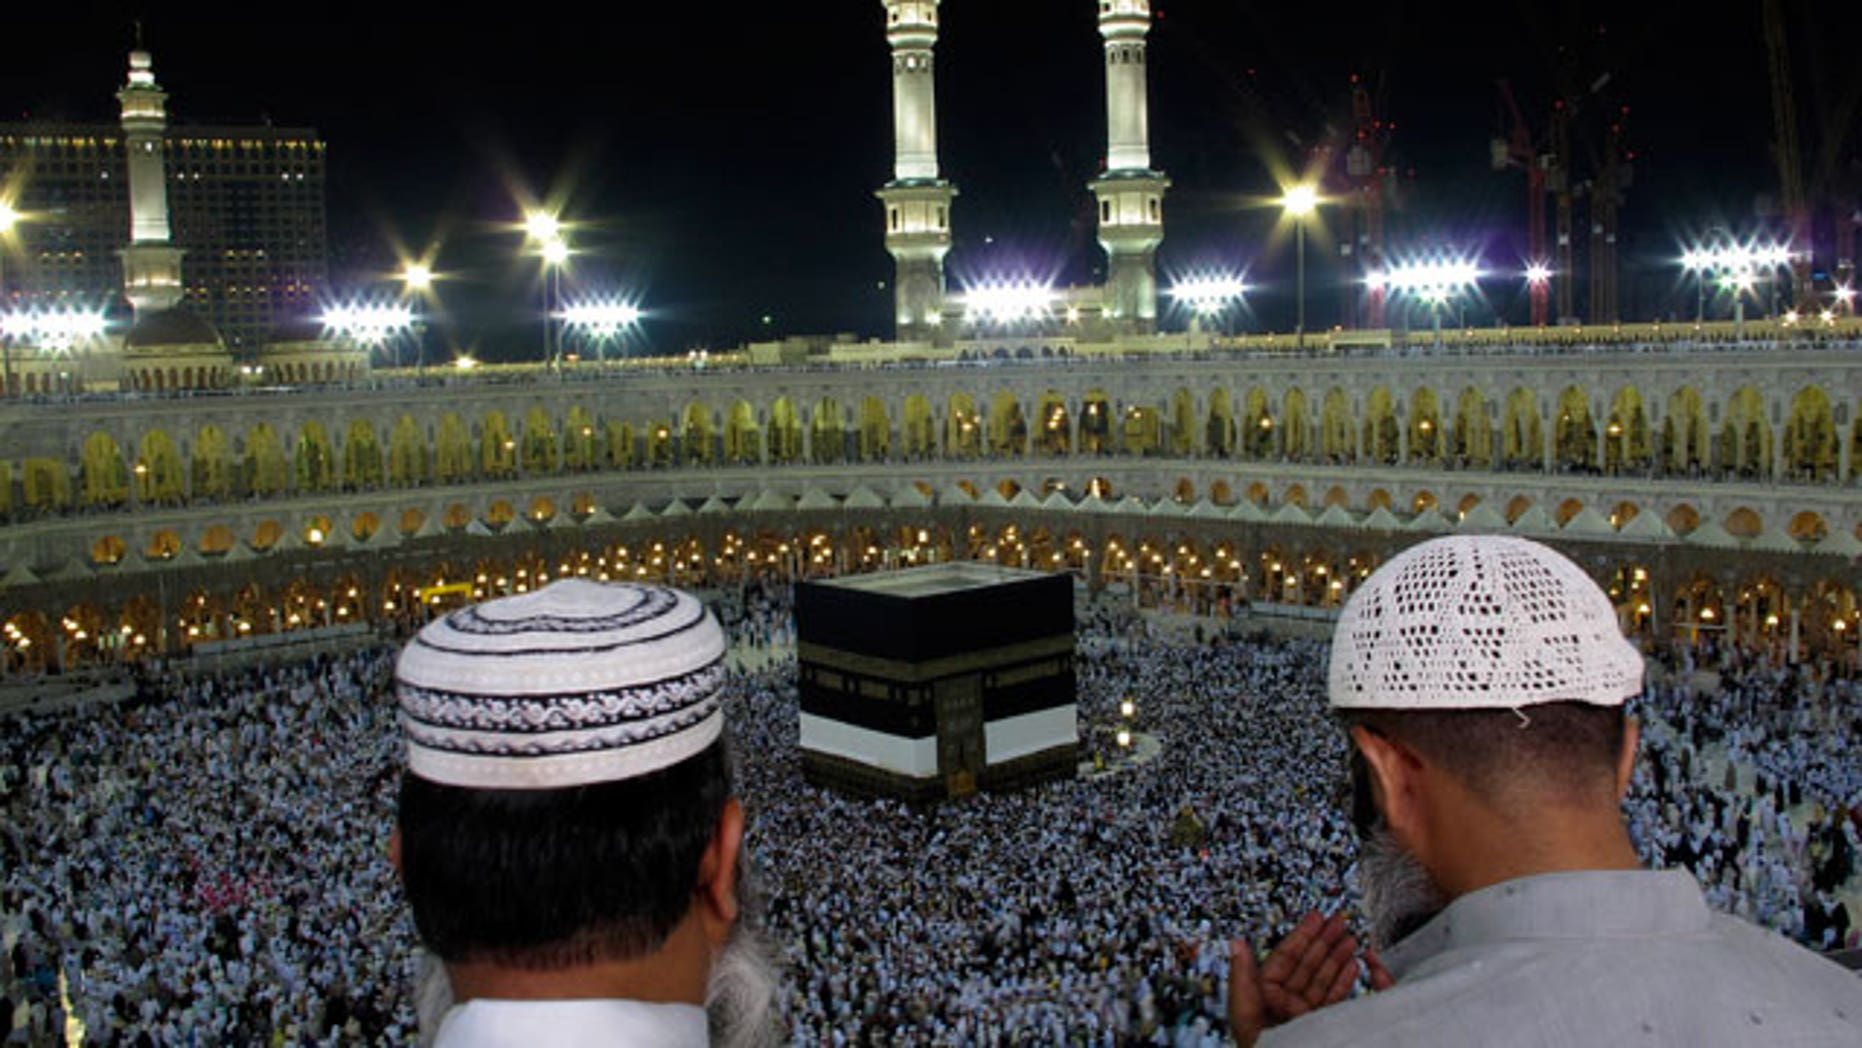 Muslim pilgrims pray as tens of thousands of Muslim pilgrims moving around the Kaaba, the black cube seen at center, inside the Grand Mosque, during the annual Hajj Mecca, Saudi Arabia, Wednesday, Nov. 10, 2010. The annual Islamic pilgrimage draws 3 million visitors each year, making it the largest yearly gathering of people in the world.